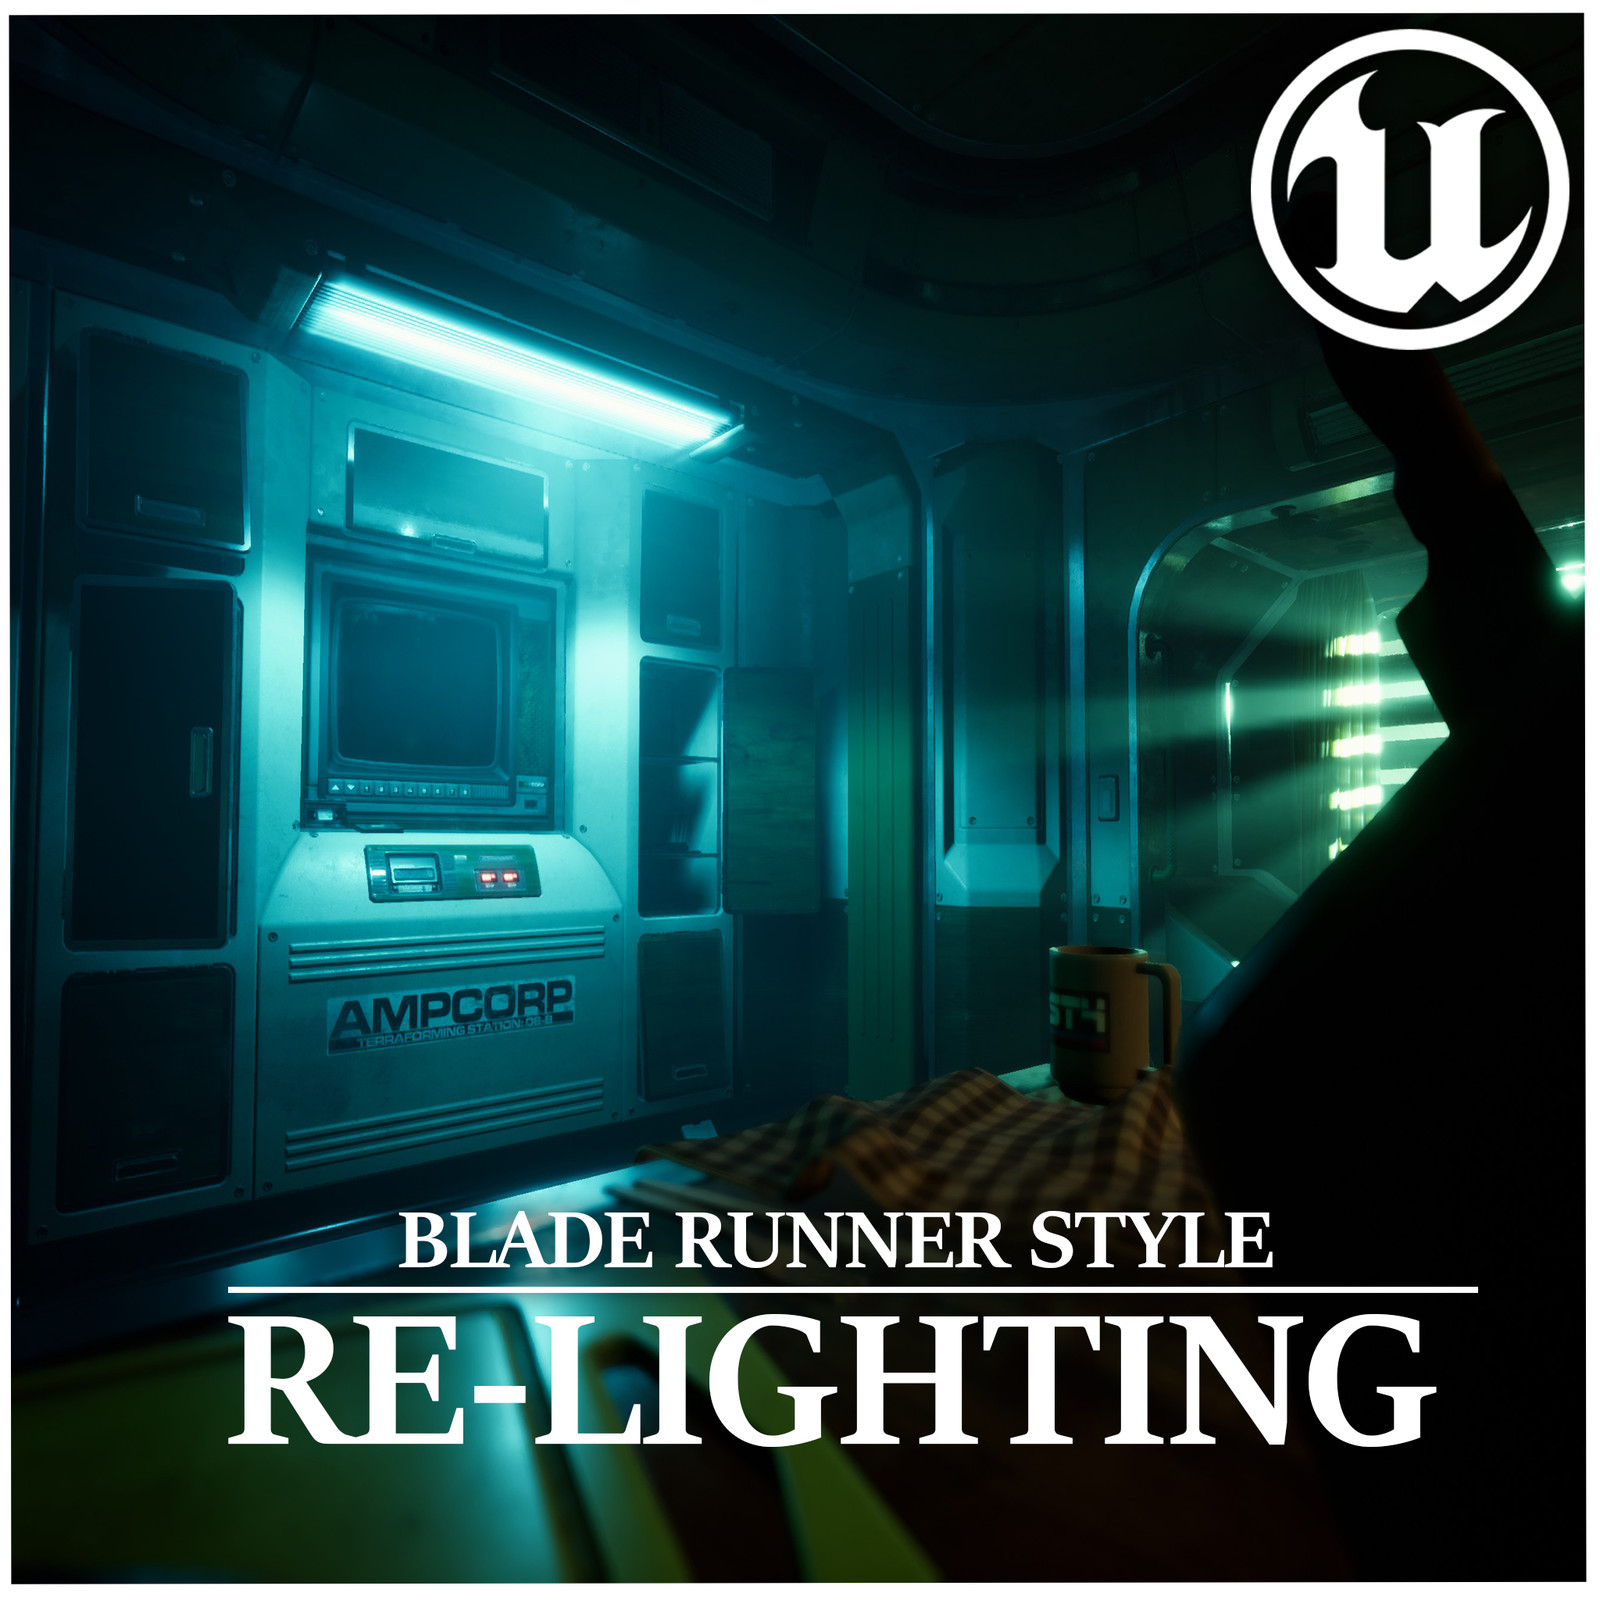 UE4 Blade Runner Style Lighting | Liam Tart's Sci-Fi Bunk - Cyberpunk ReLight